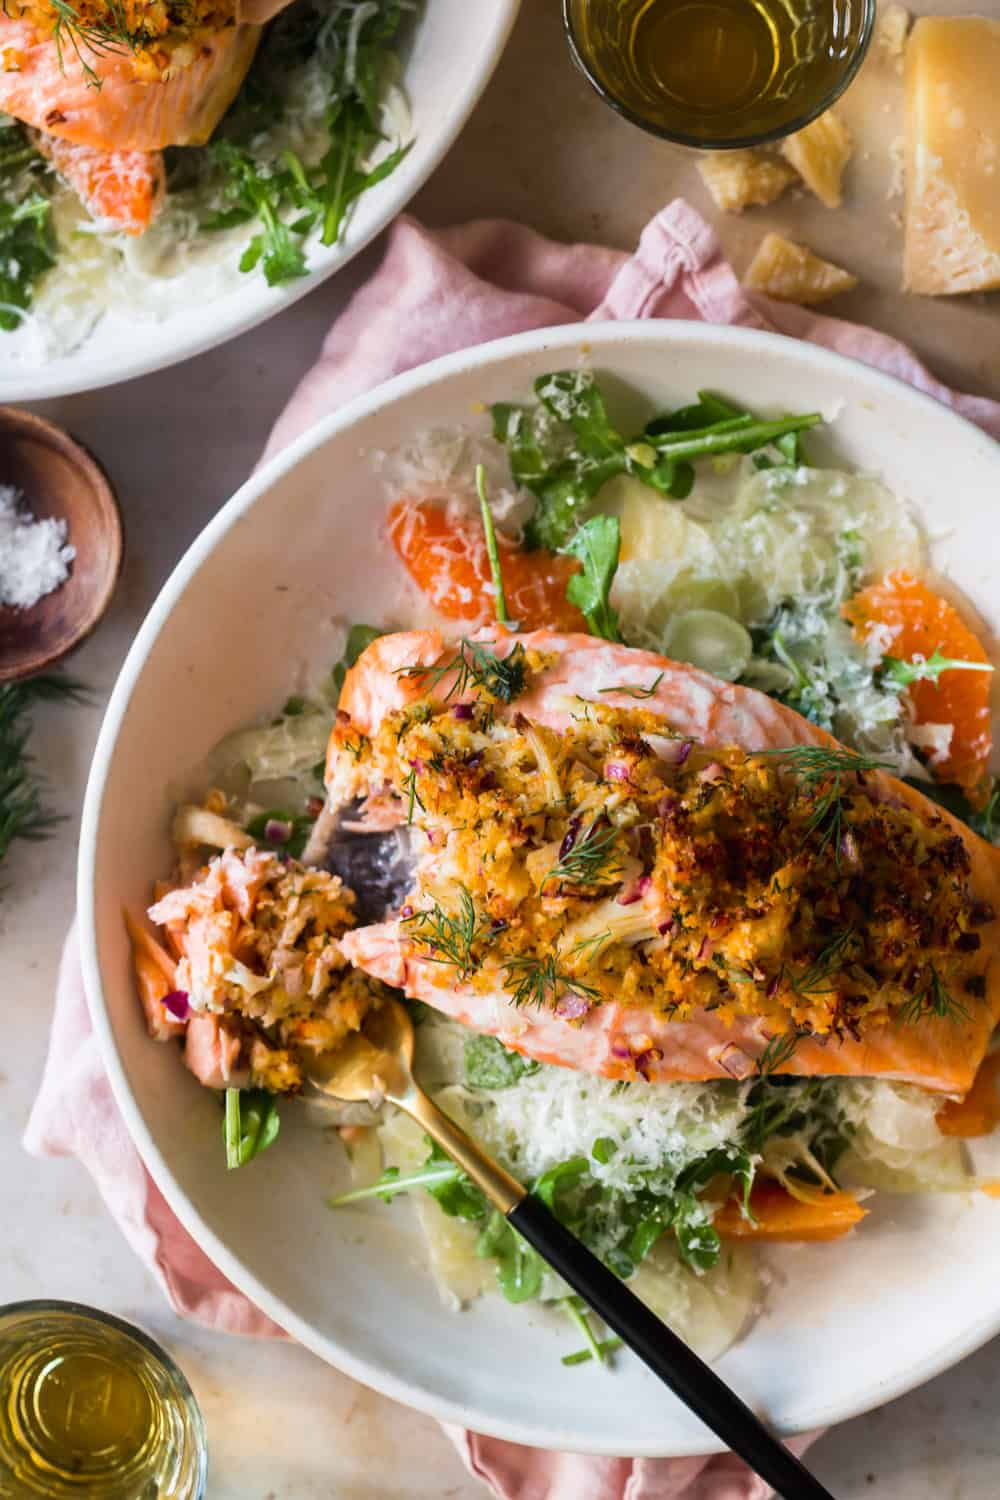 Baked stuffed salmon in a white plate on top of a green salad